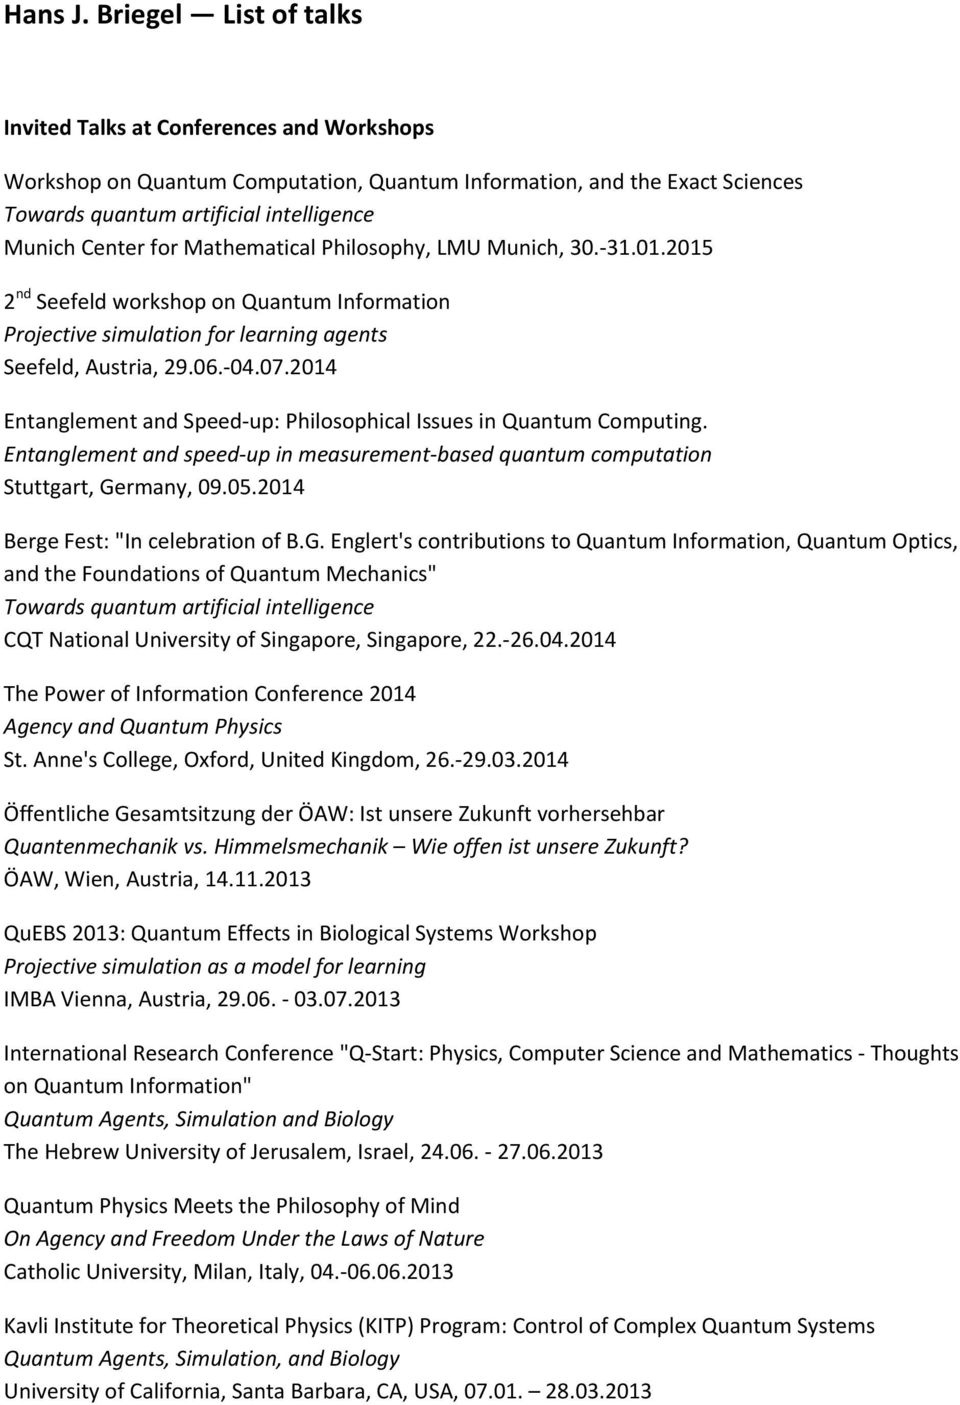 Mathematical Philosophy, LMU Munich, 30. 31.01.2015 2 nd Seefeld workshop on Quantum Information Projective simulation for learning agents Seefeld, Austria, 29.06. 04.07.